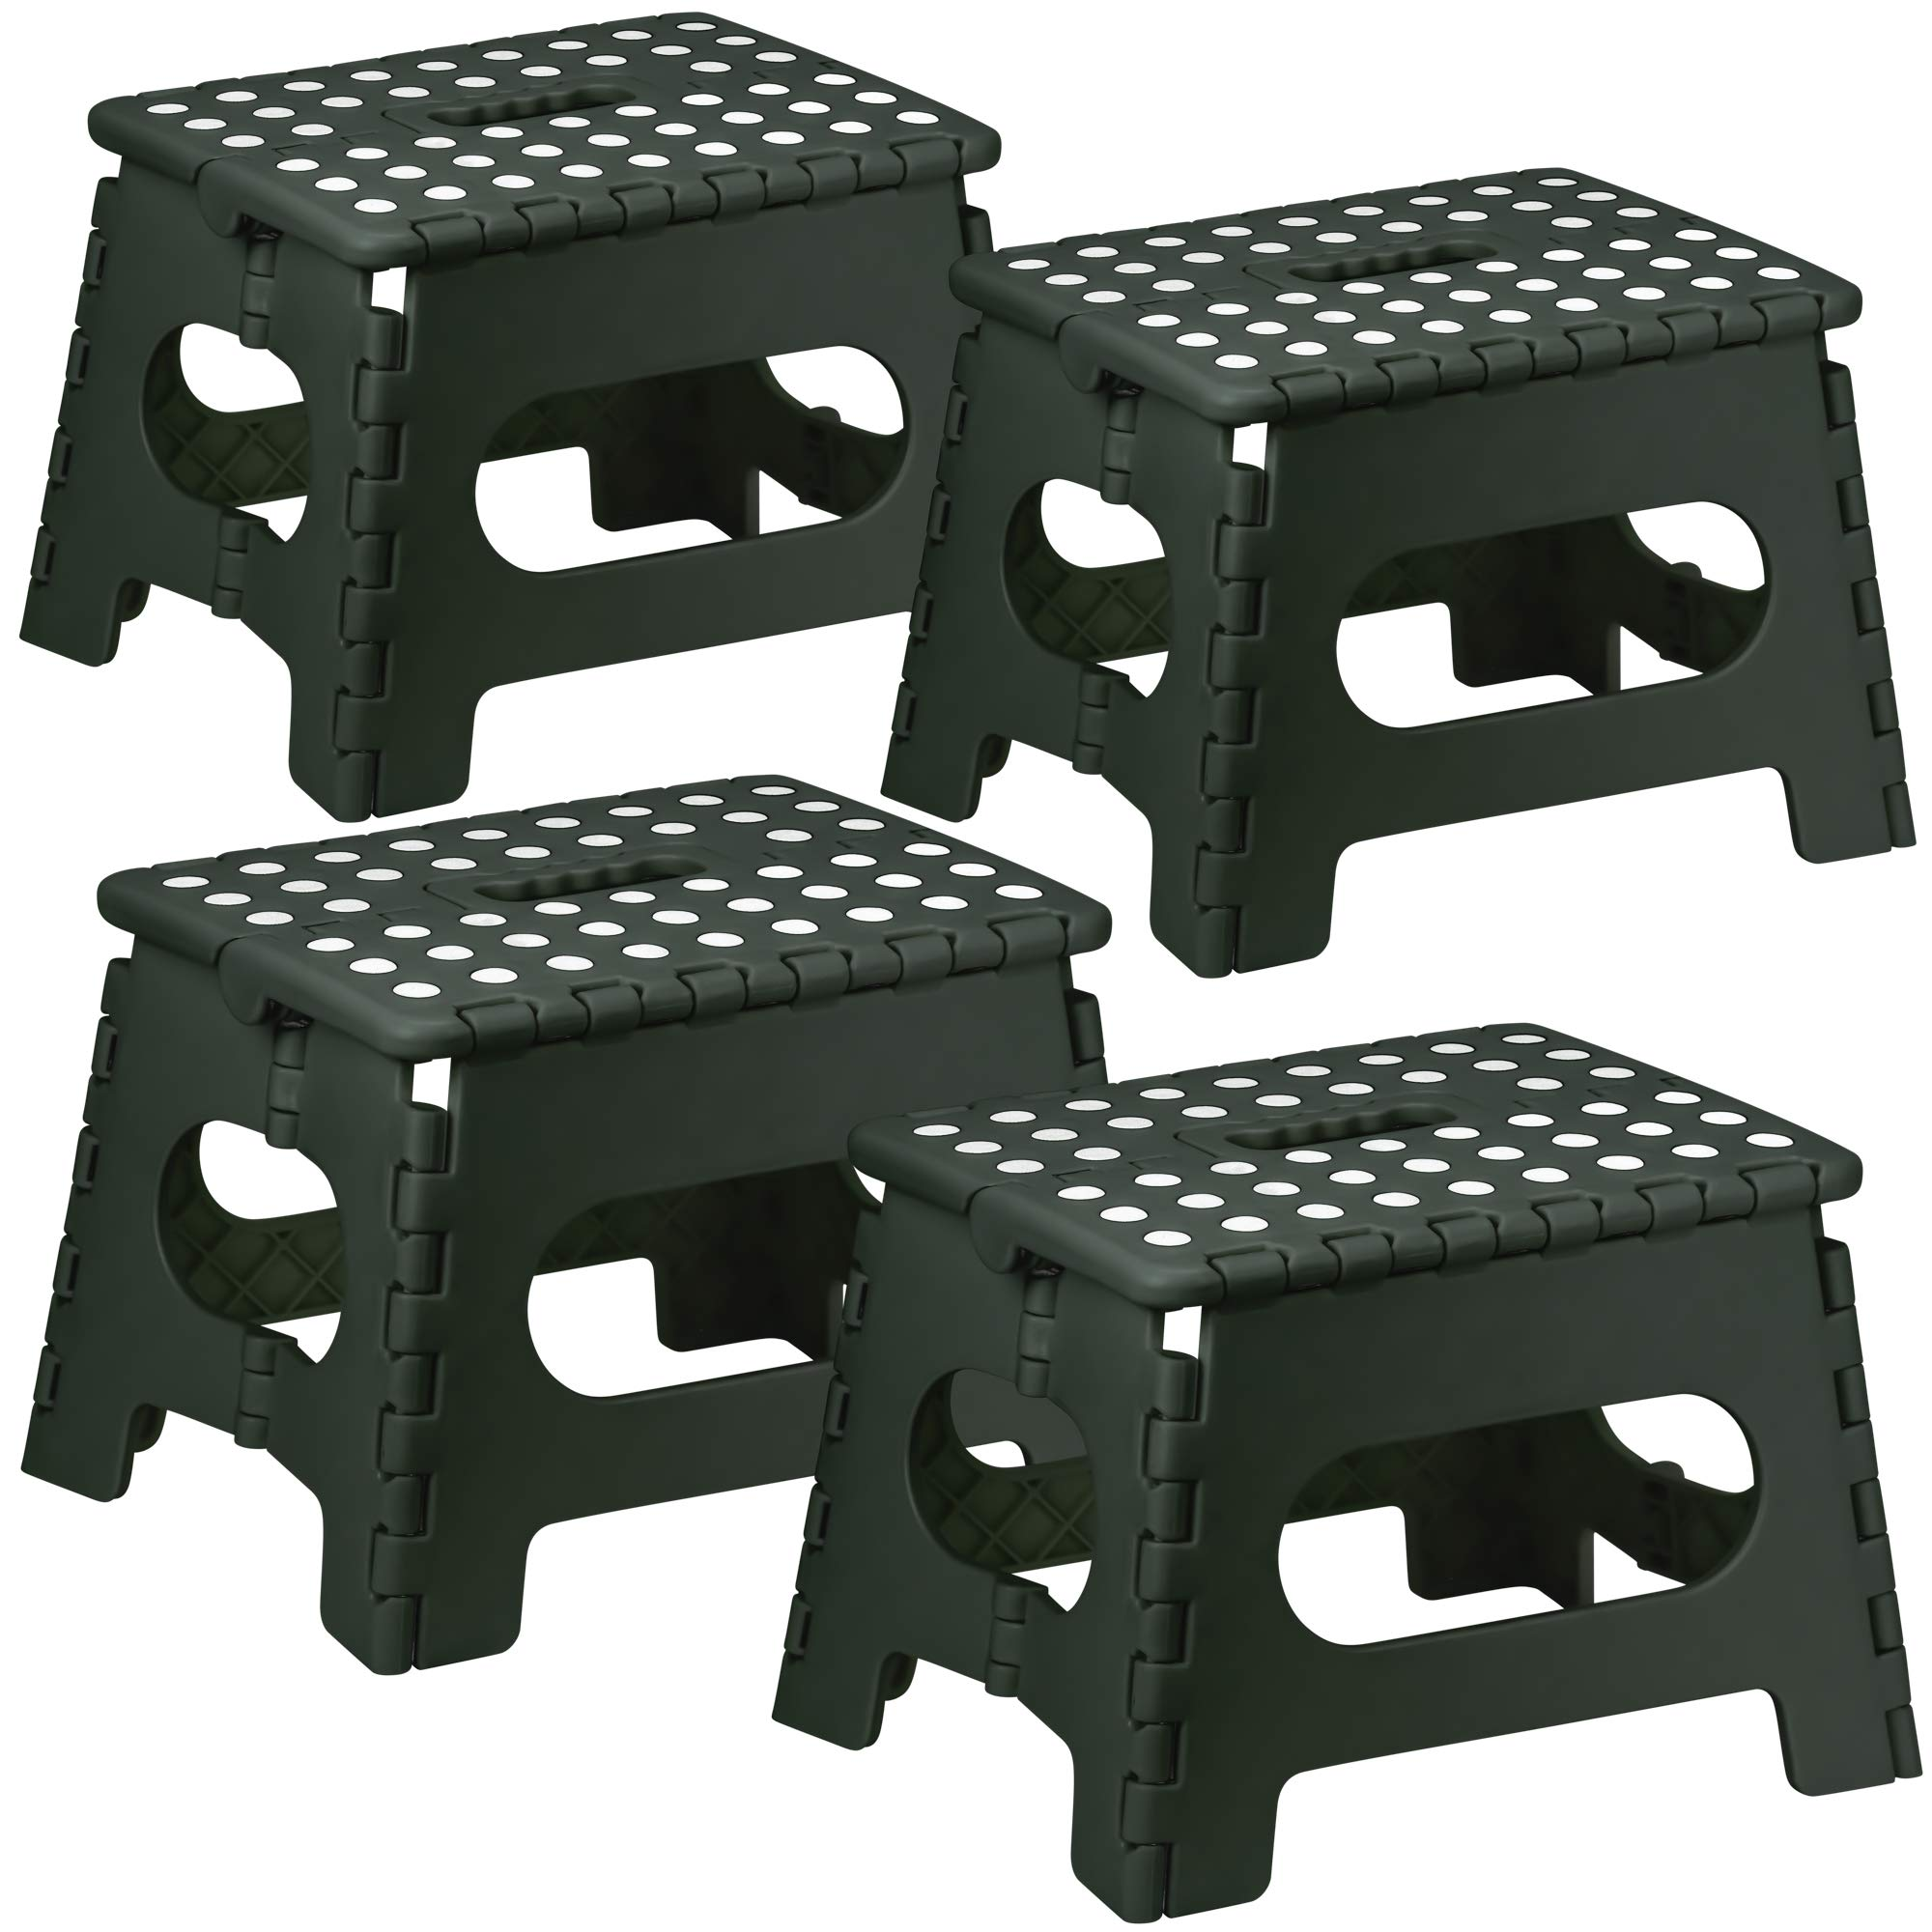 DecorRack 4 Foldable Step Stools with Handle, Heavy Duty Foot Stools for Kids or Adults, Portable, Sturdy, 9 Inches High, Perfect for Bathroom, Bedroom, Kitchen, Non-Slip Platform, Black (4 Pack)